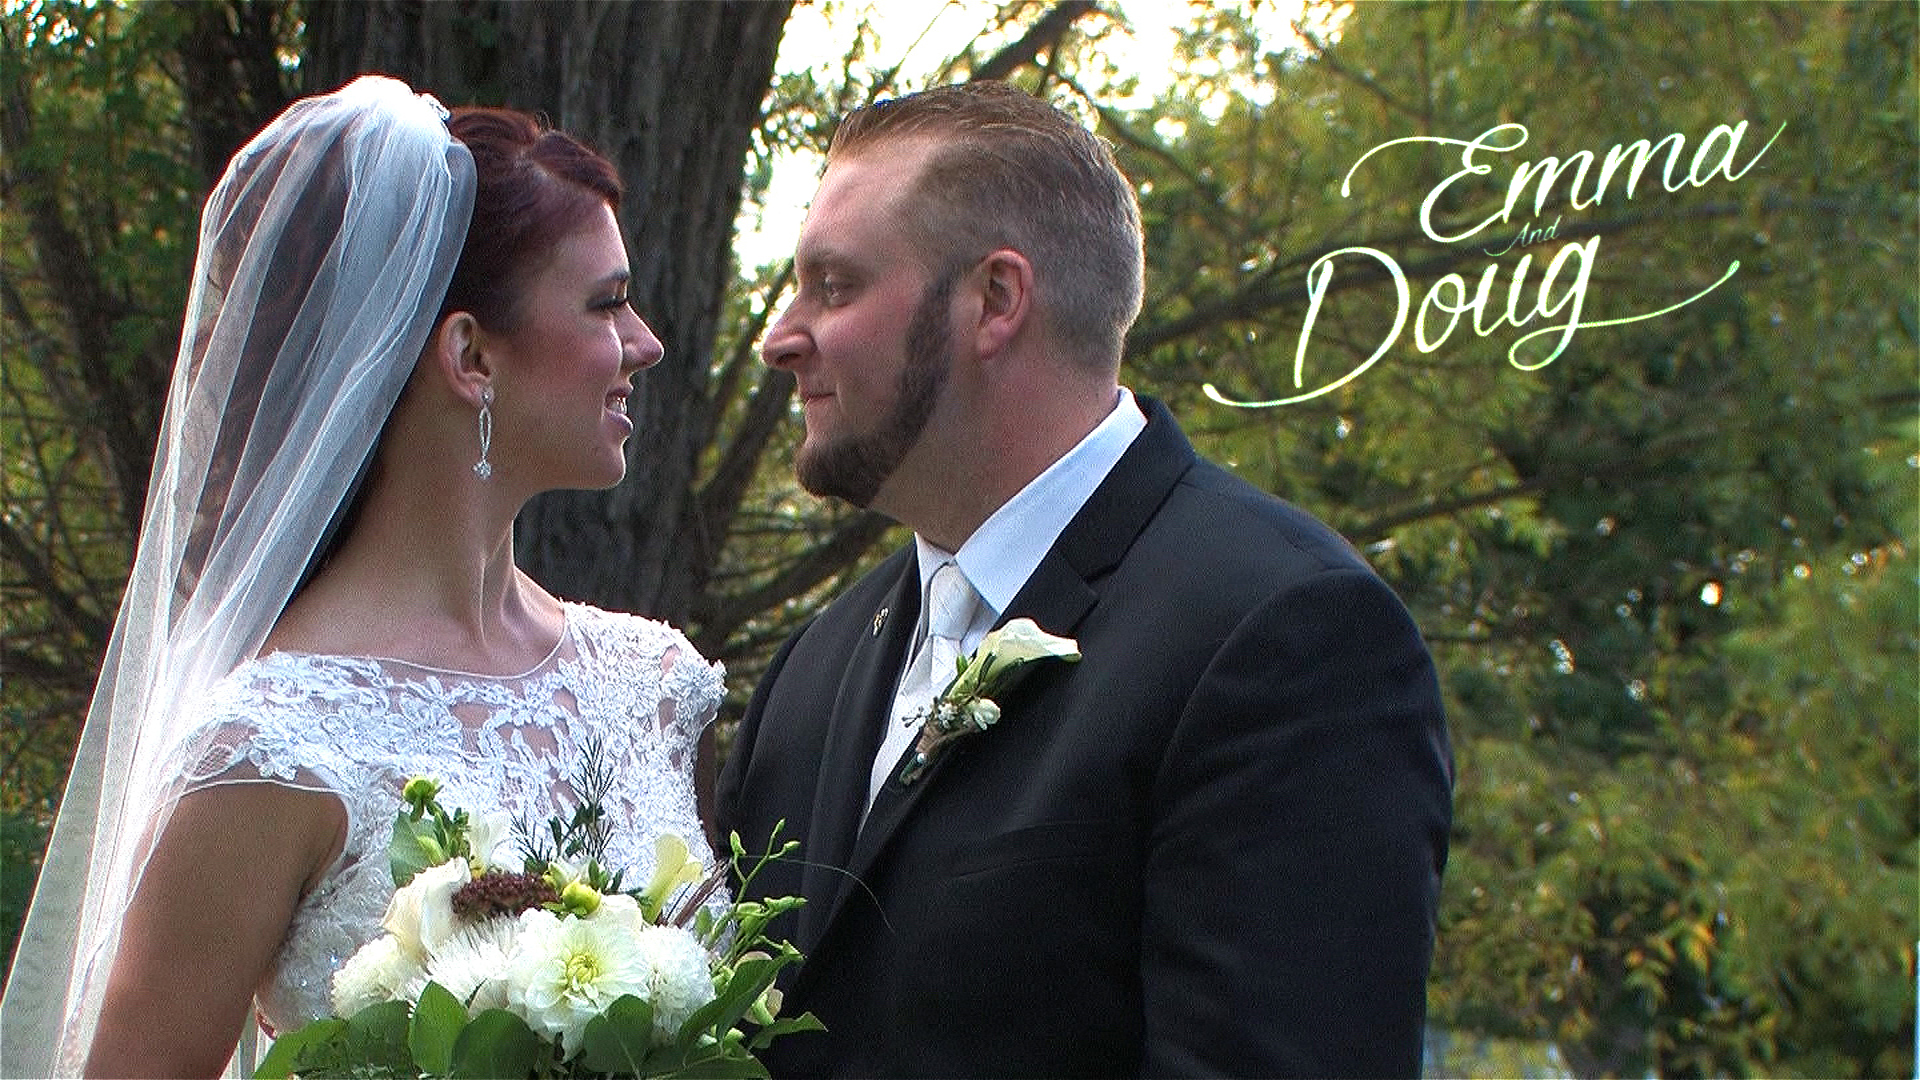 Emma & Doug – Buffalo Wedding Video